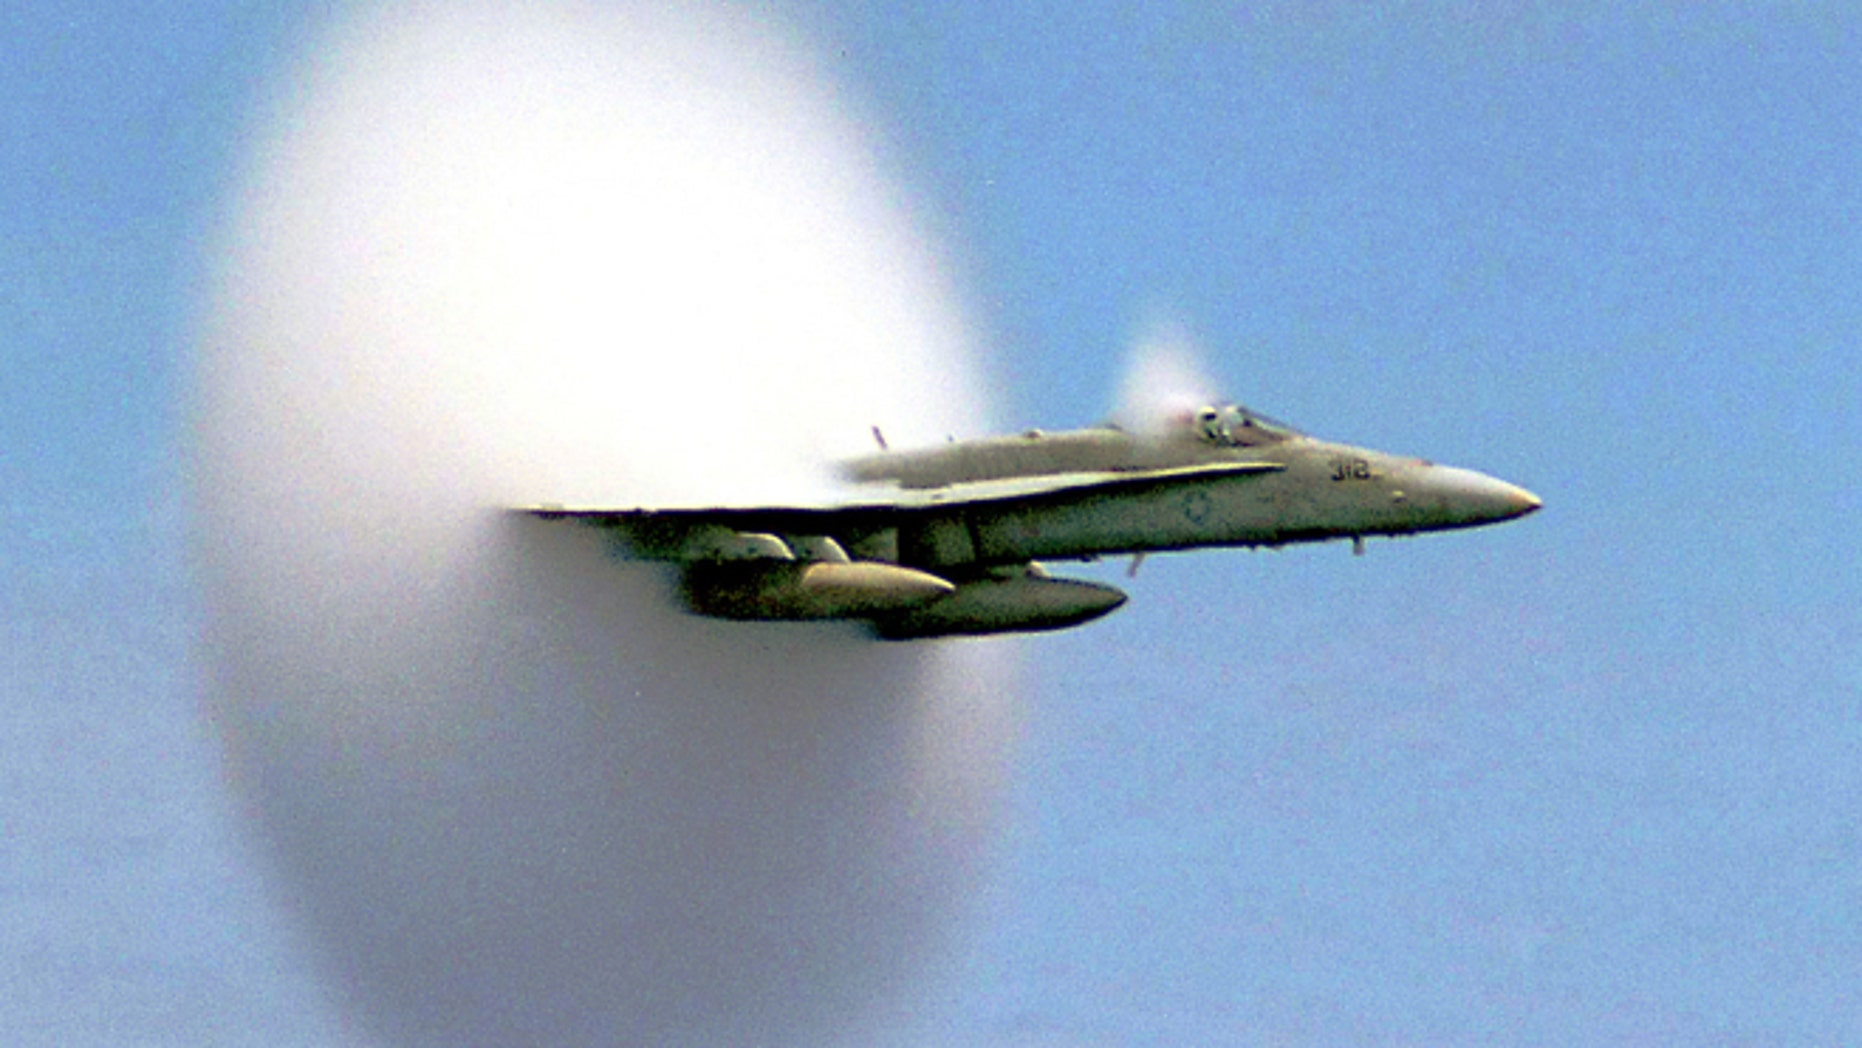 FILE: An F/A-18 Hornet breaks the sound barrier. The sonic booms have been known to shake buildings.